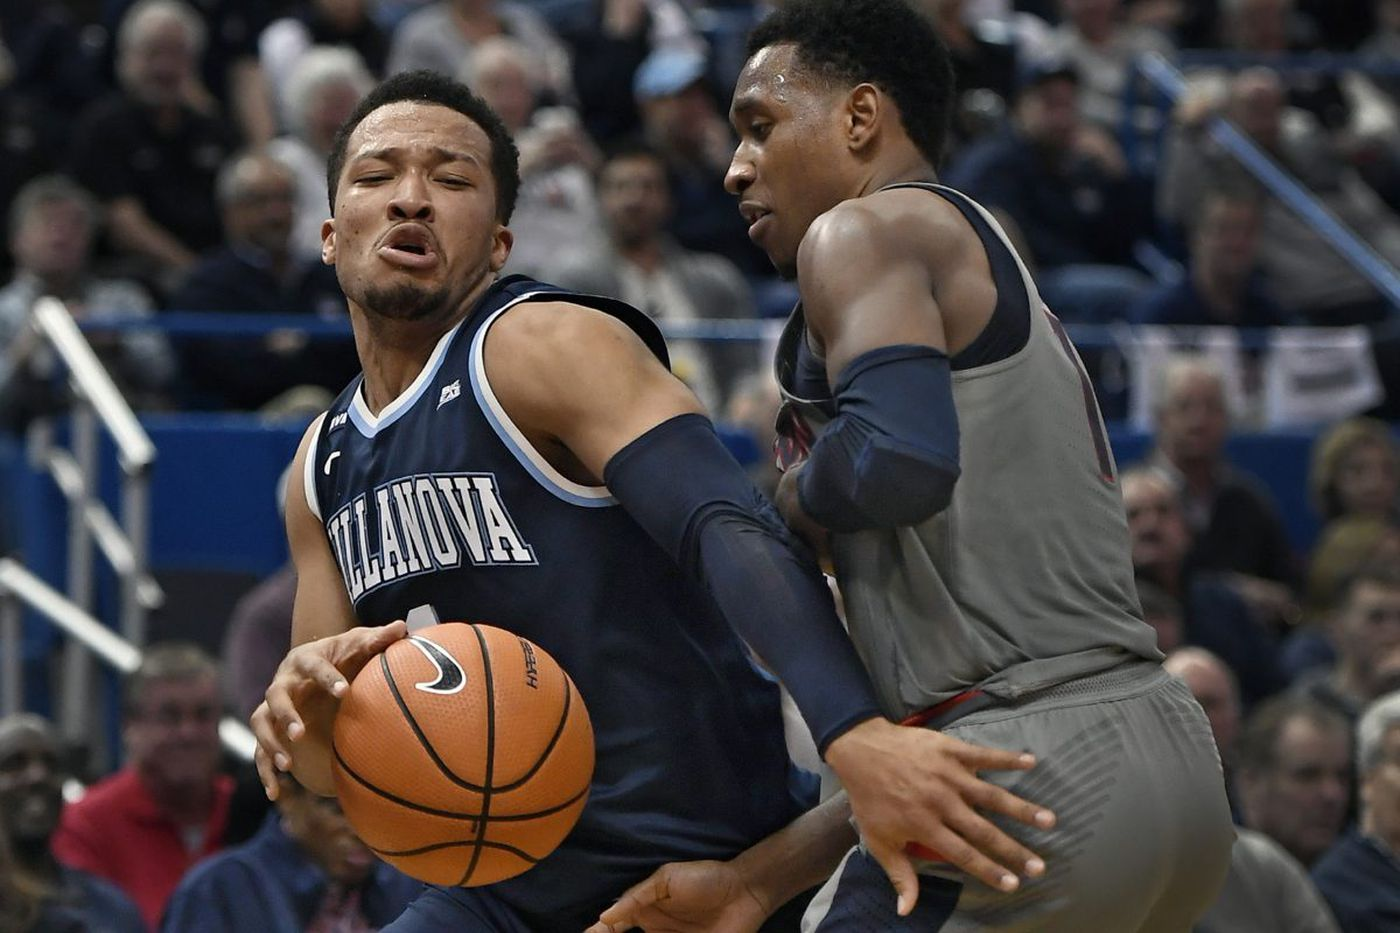 Villanova uses big first-half push, defense, to rout UConn